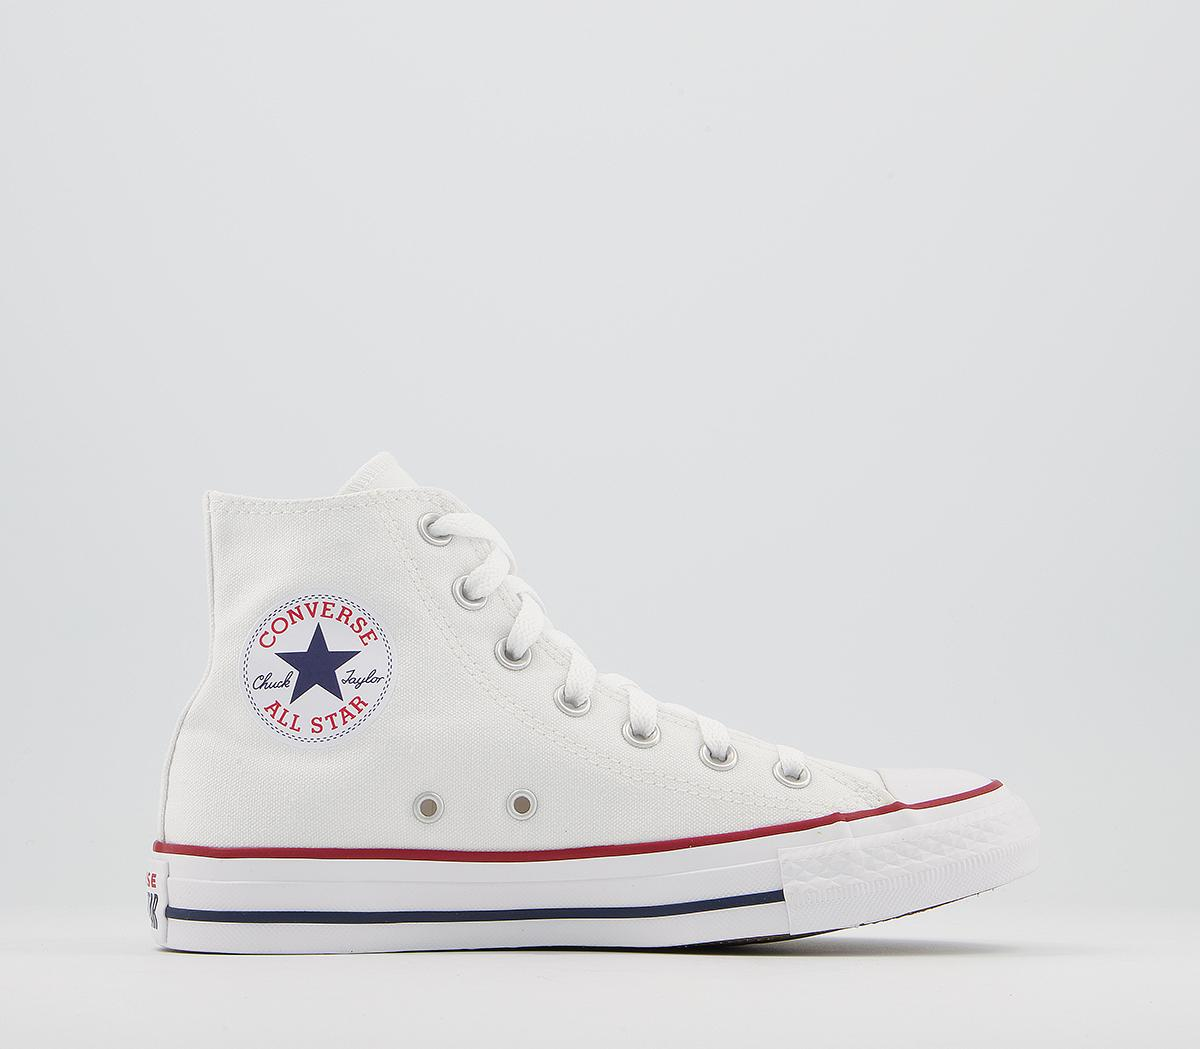 Shinkan Seguro mueble  Converse All Star hi optical white canvas